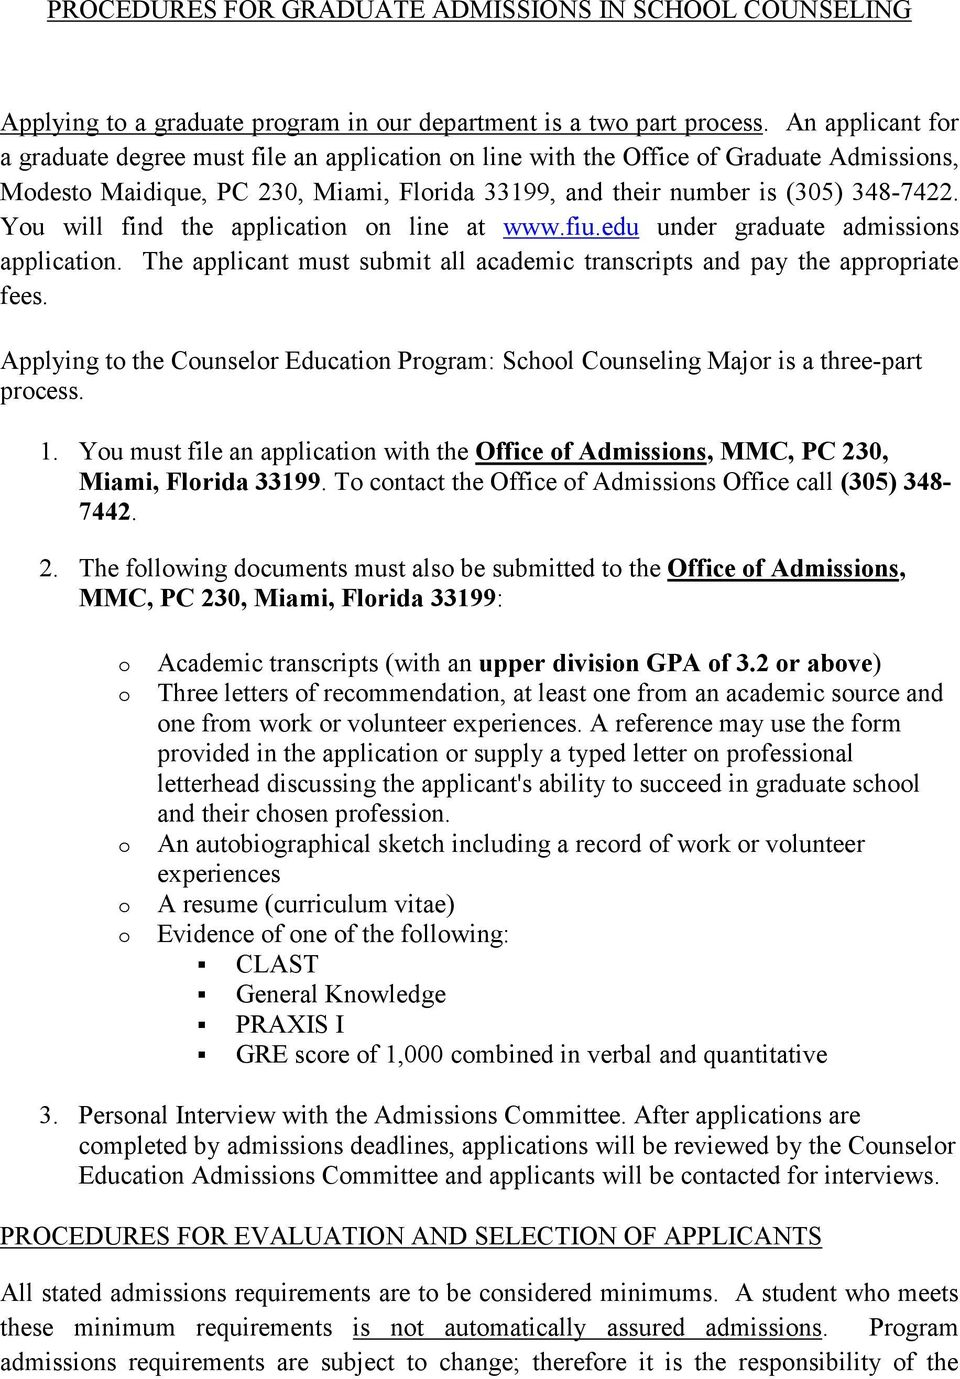 You will find the application on line at www.fiu.edu under graduate admissions application. The applicant must submit all academic transcripts and pay the appropriate fees.